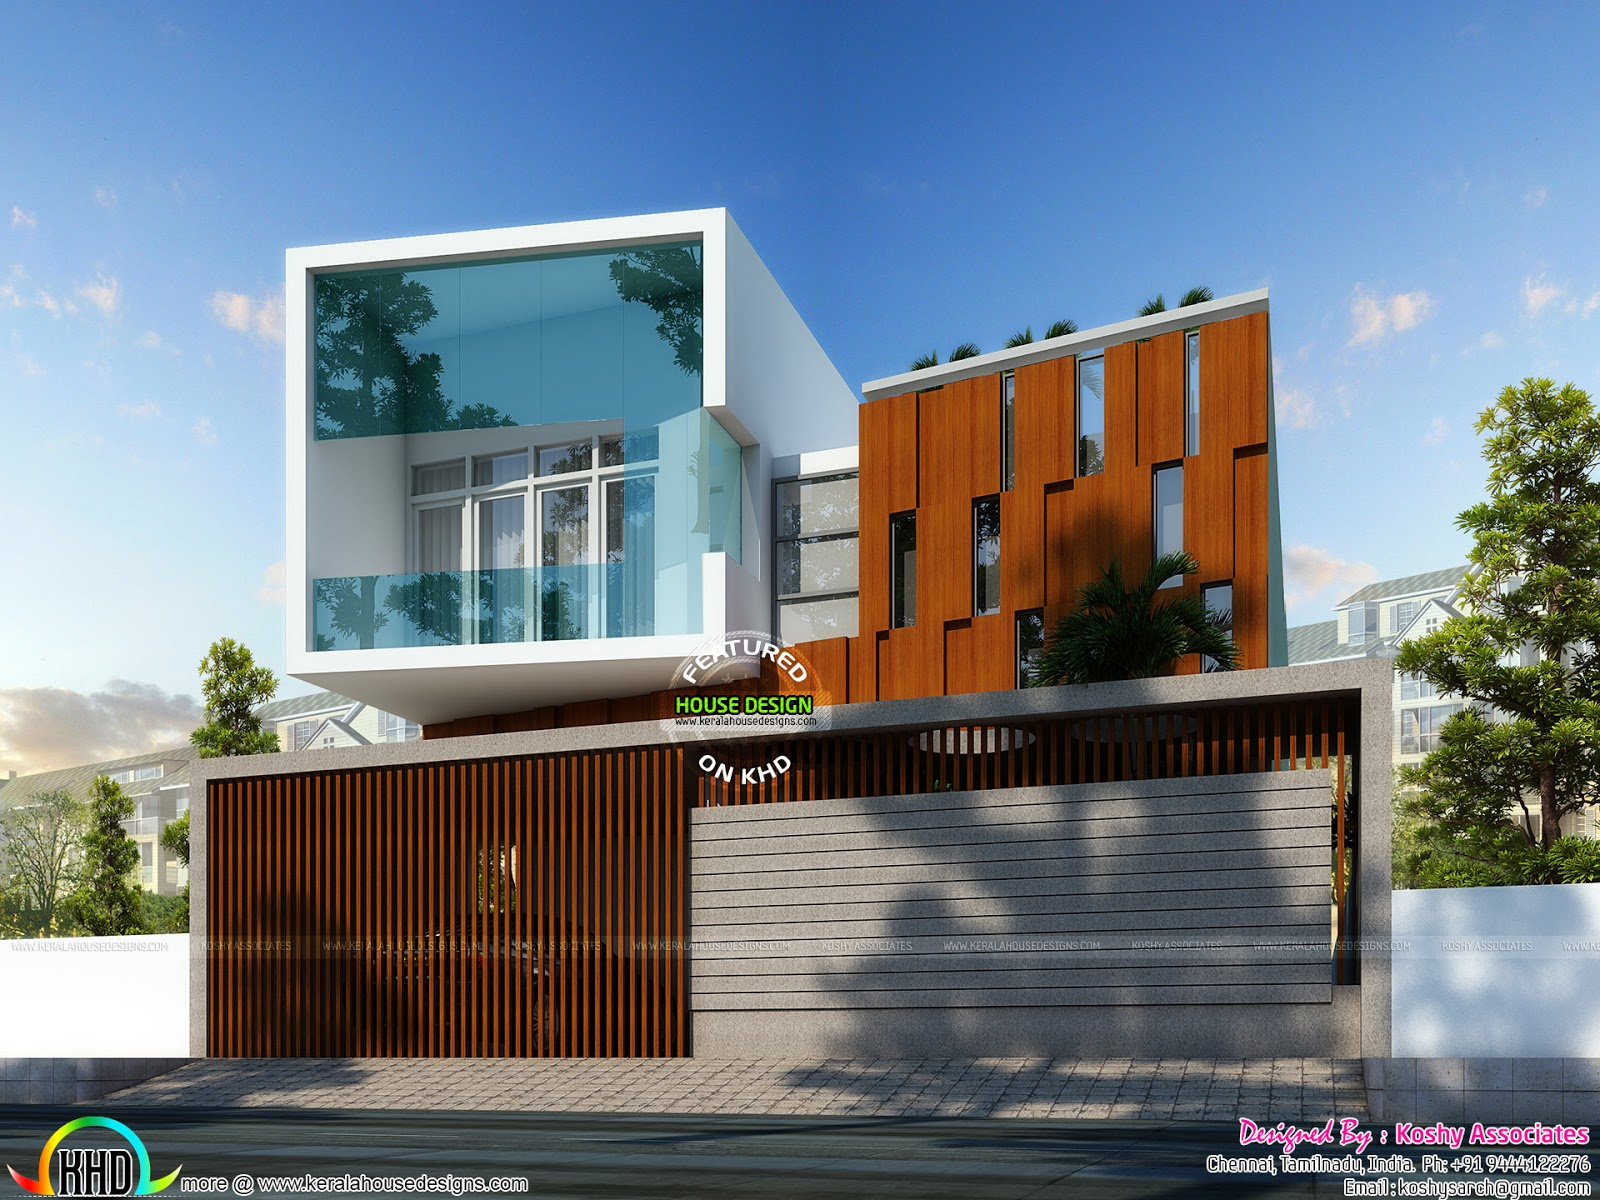 Cute ultra modern house architecture kerala home design and floor plans - Contemporary modern home design ideas with decor ...